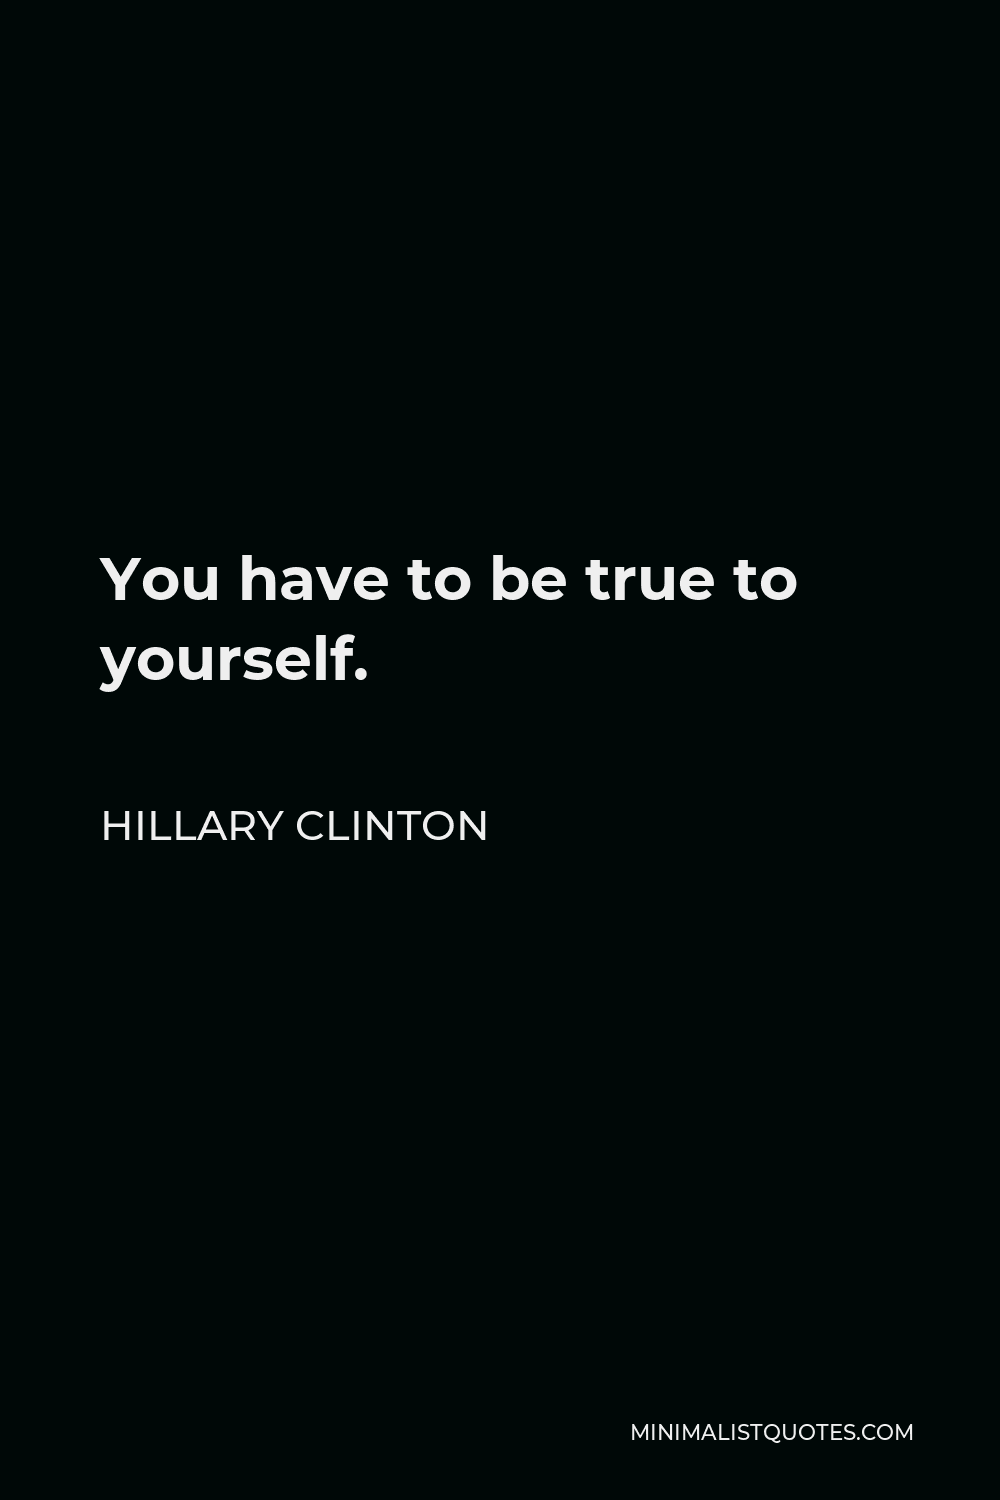 Hillary Clinton Quote - You have to be true to yourself.